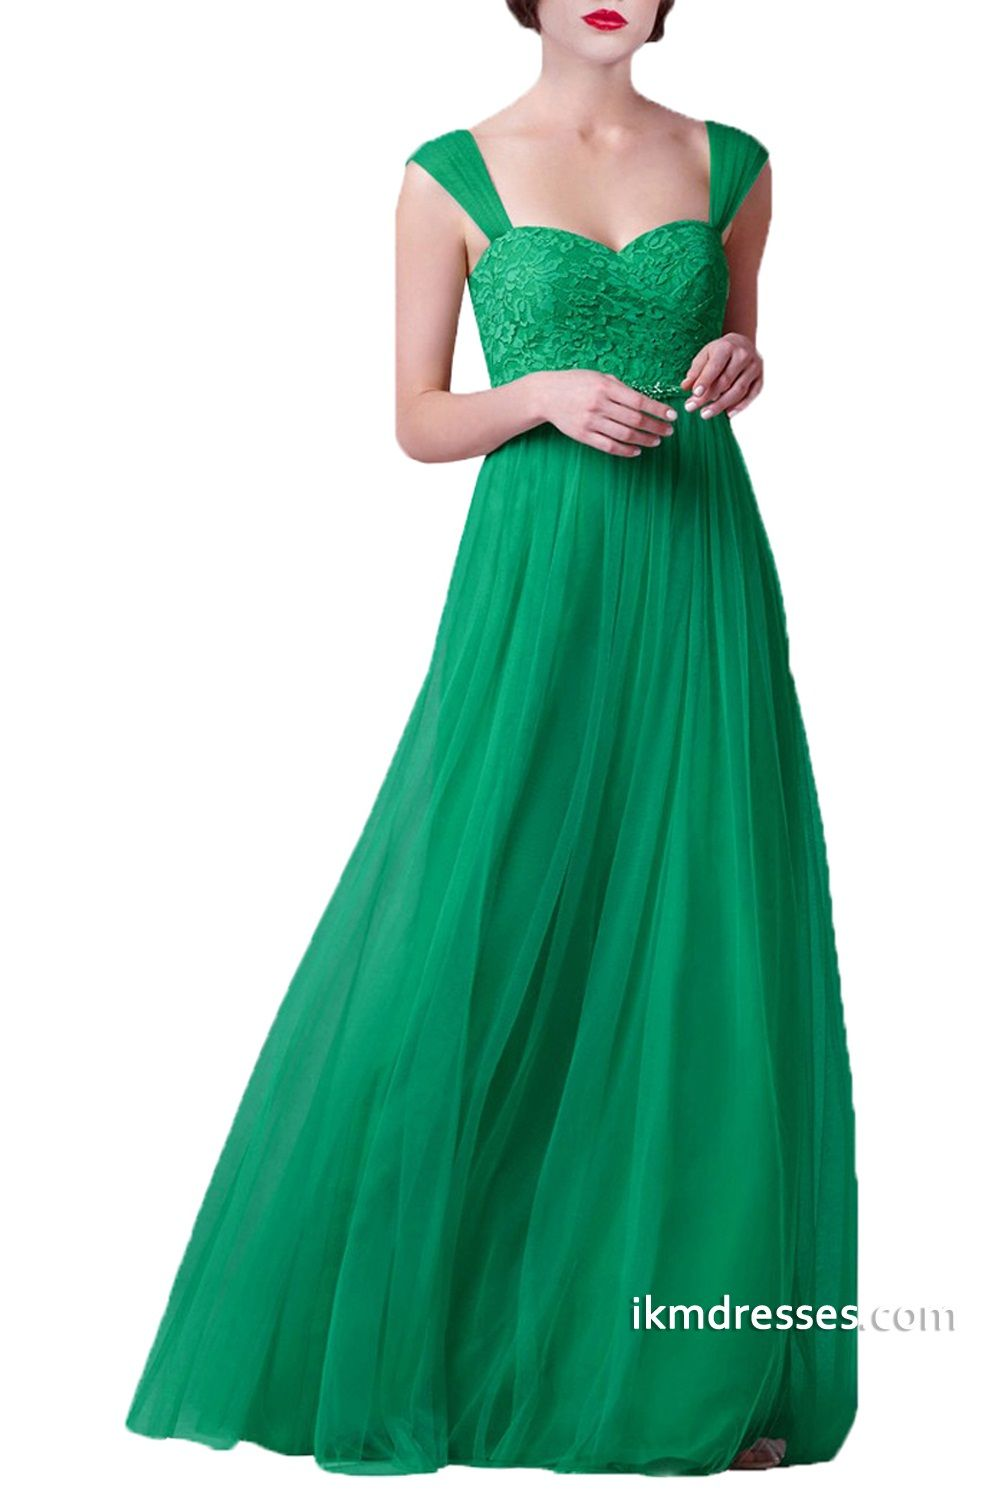 http://www.ikmdresses.com/Tulle-Bridesmaid-Dress-Prom-Dress-Lace-Prom-Dress-p88465